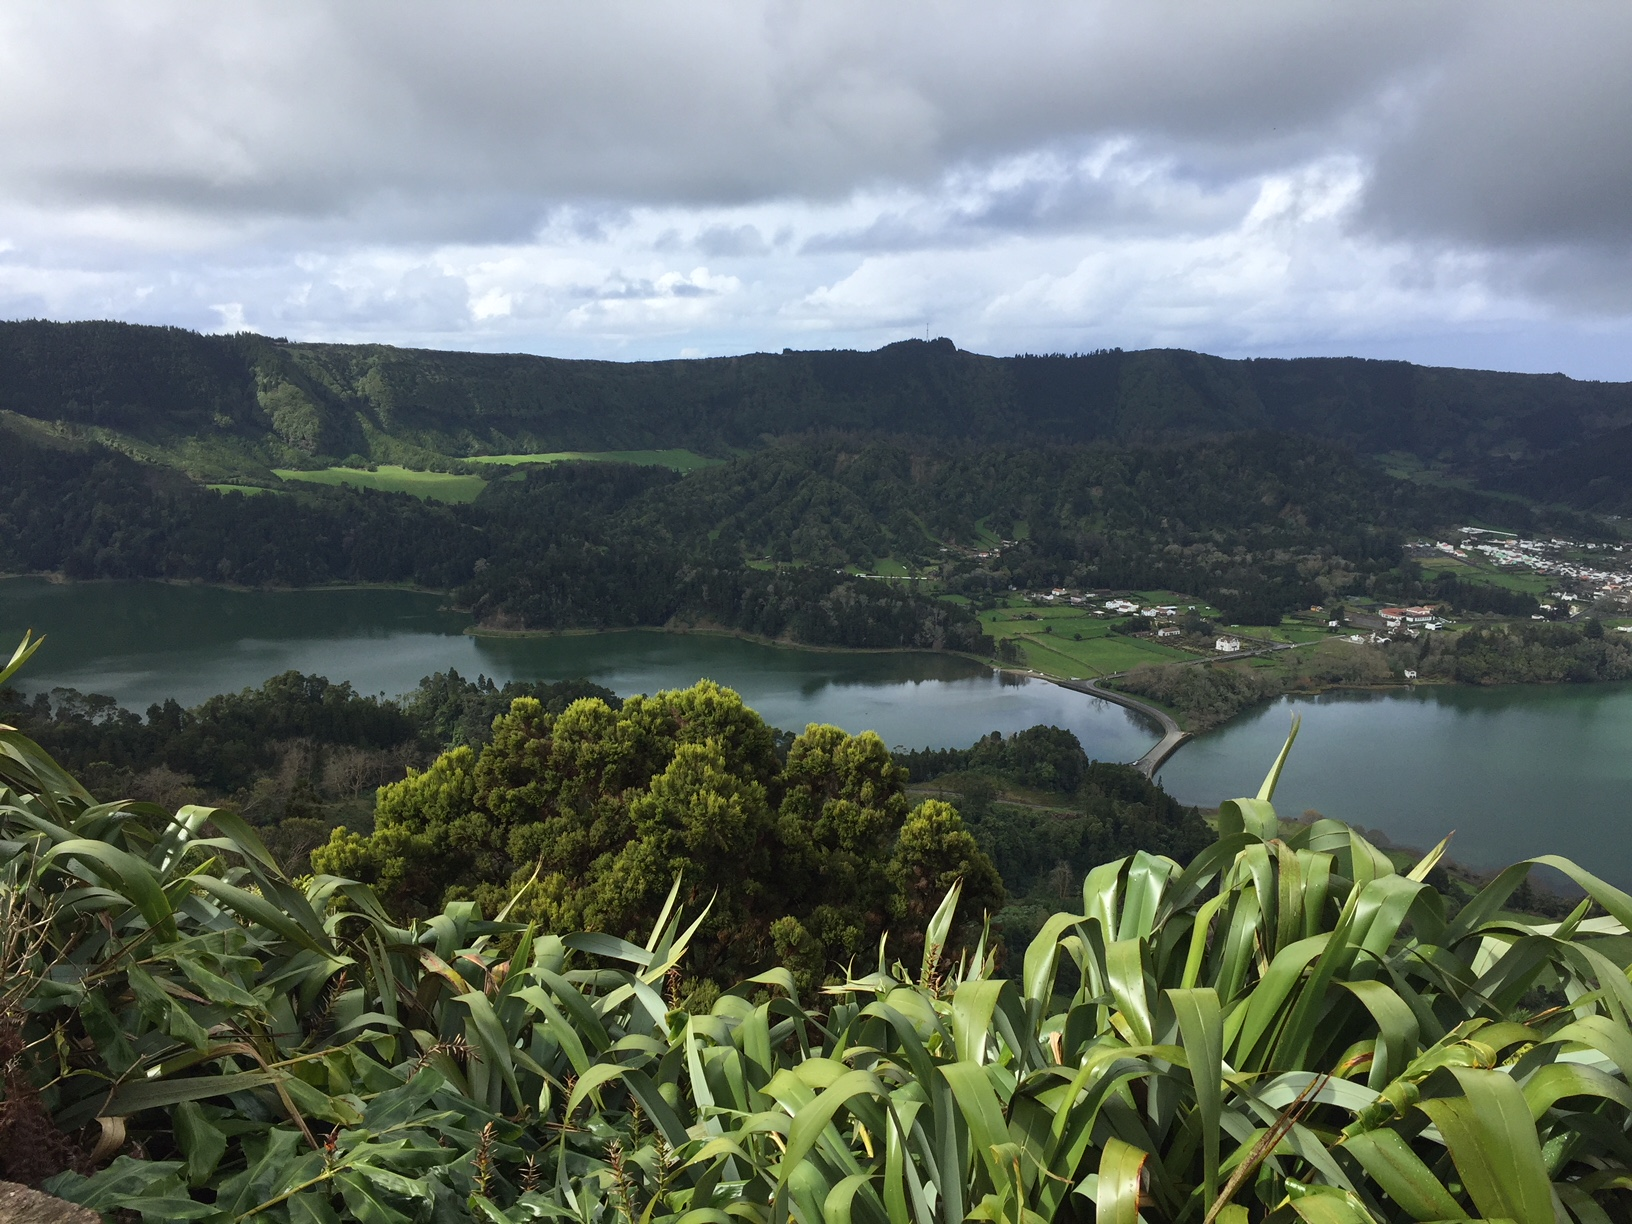 Lagoon of the seven cities, a twin lake in the crater of a dormant volcano in the western part of the São Miguel island (Azores, Portugal). Photo by Dr. Ana Sanches Silva.